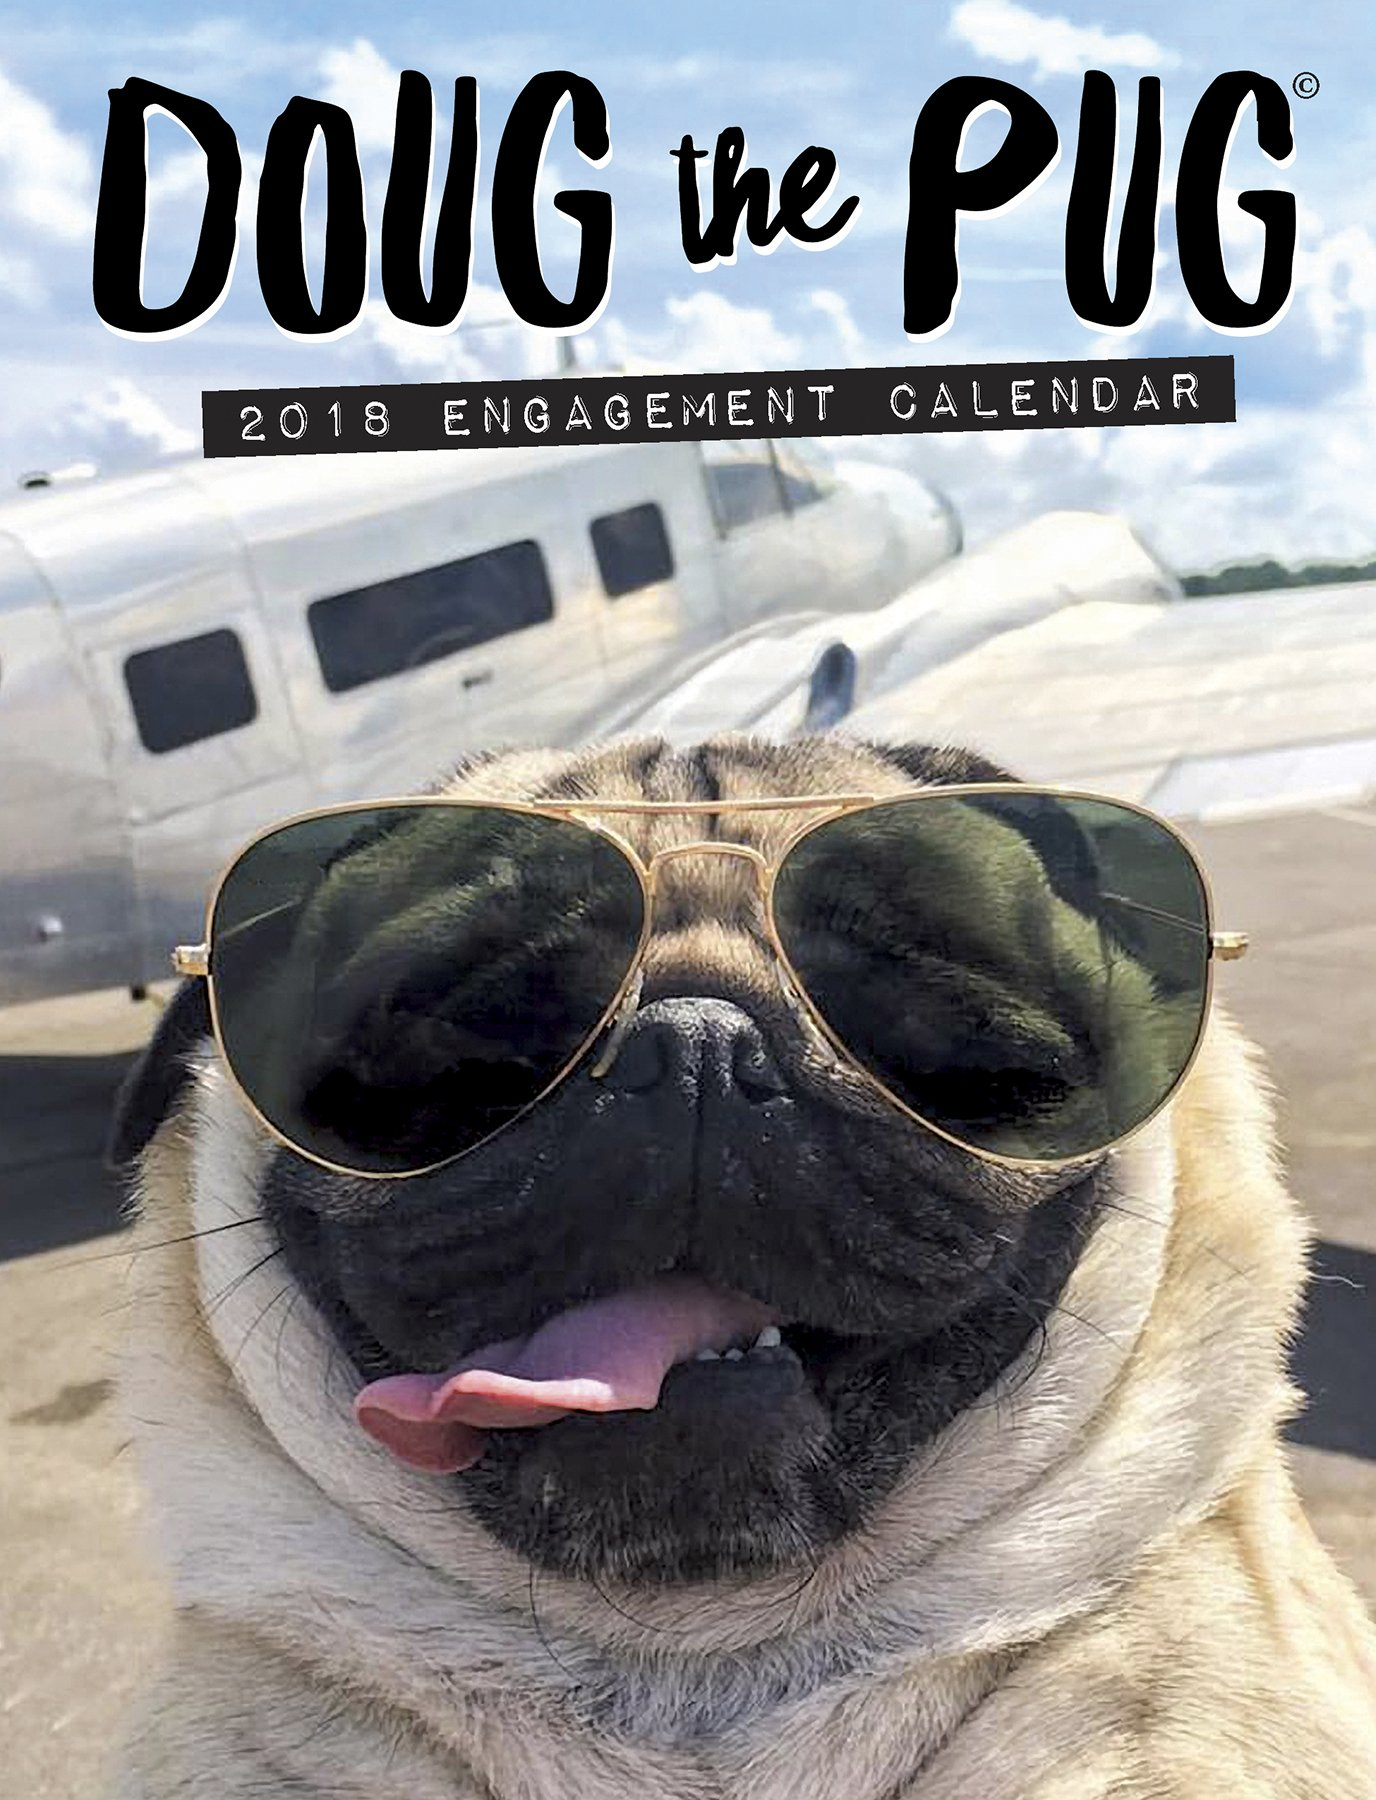 doug-the-pug-2018-engagement-calendar